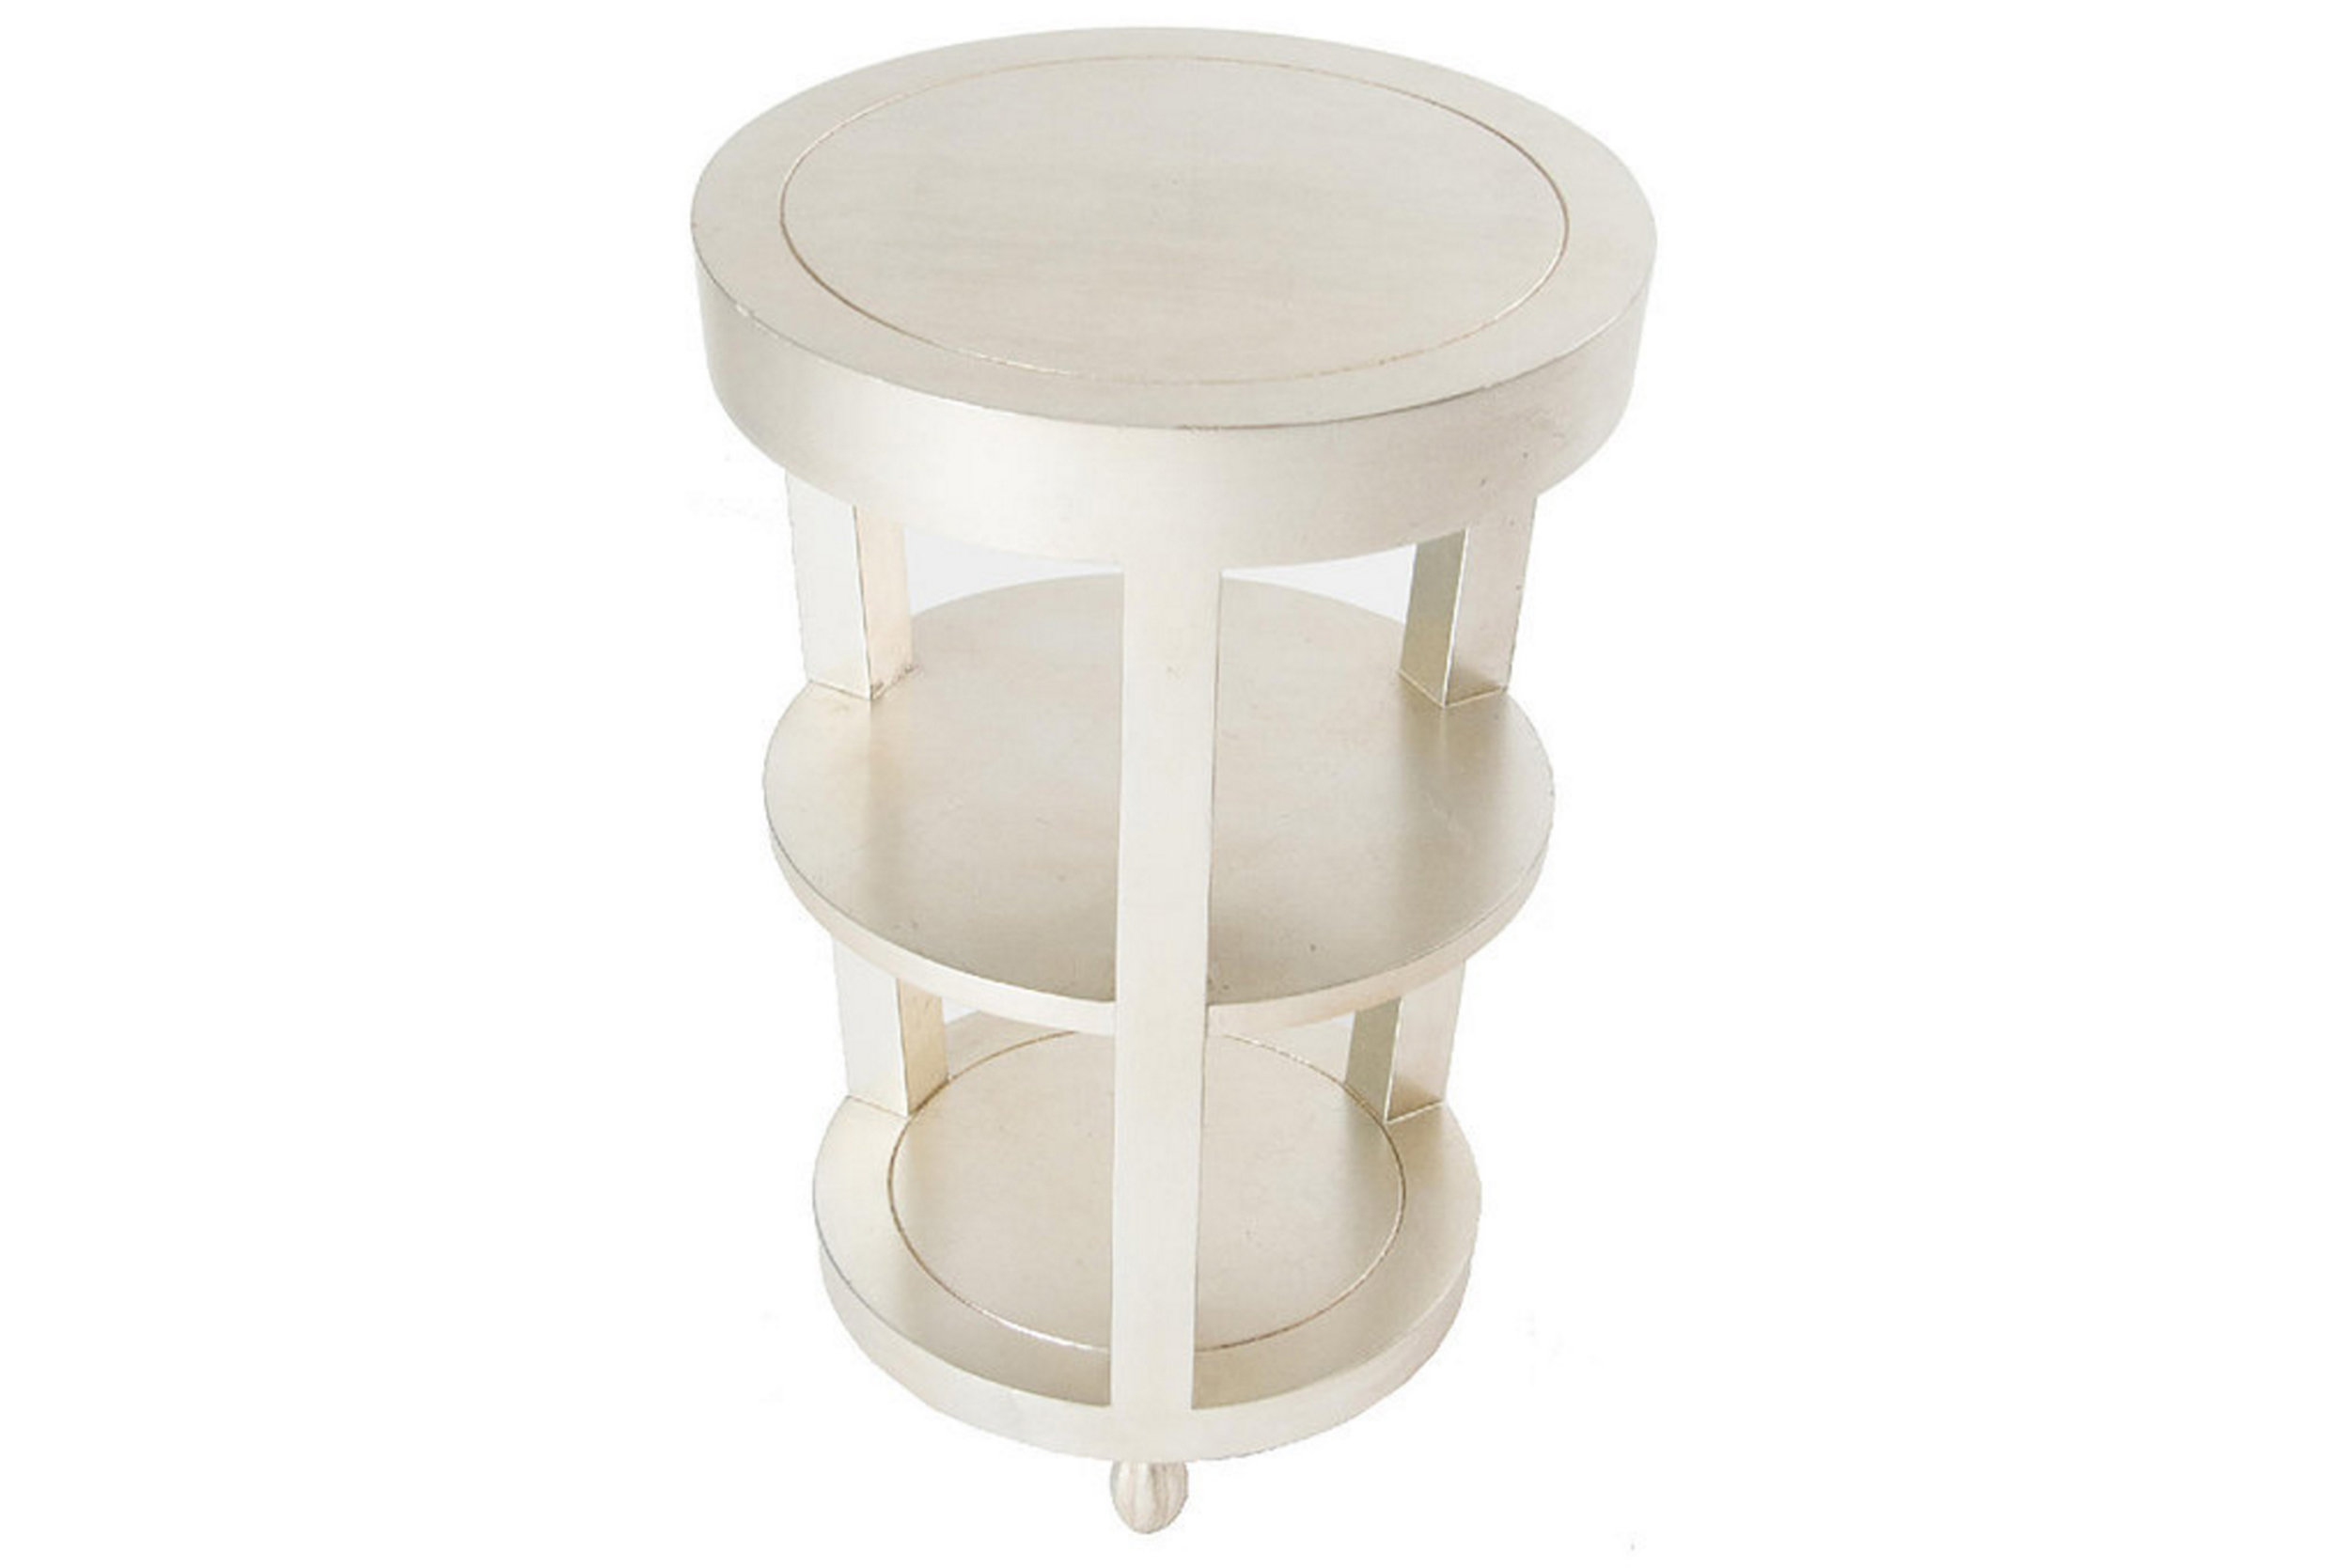 3 Dome Side Table.jpg